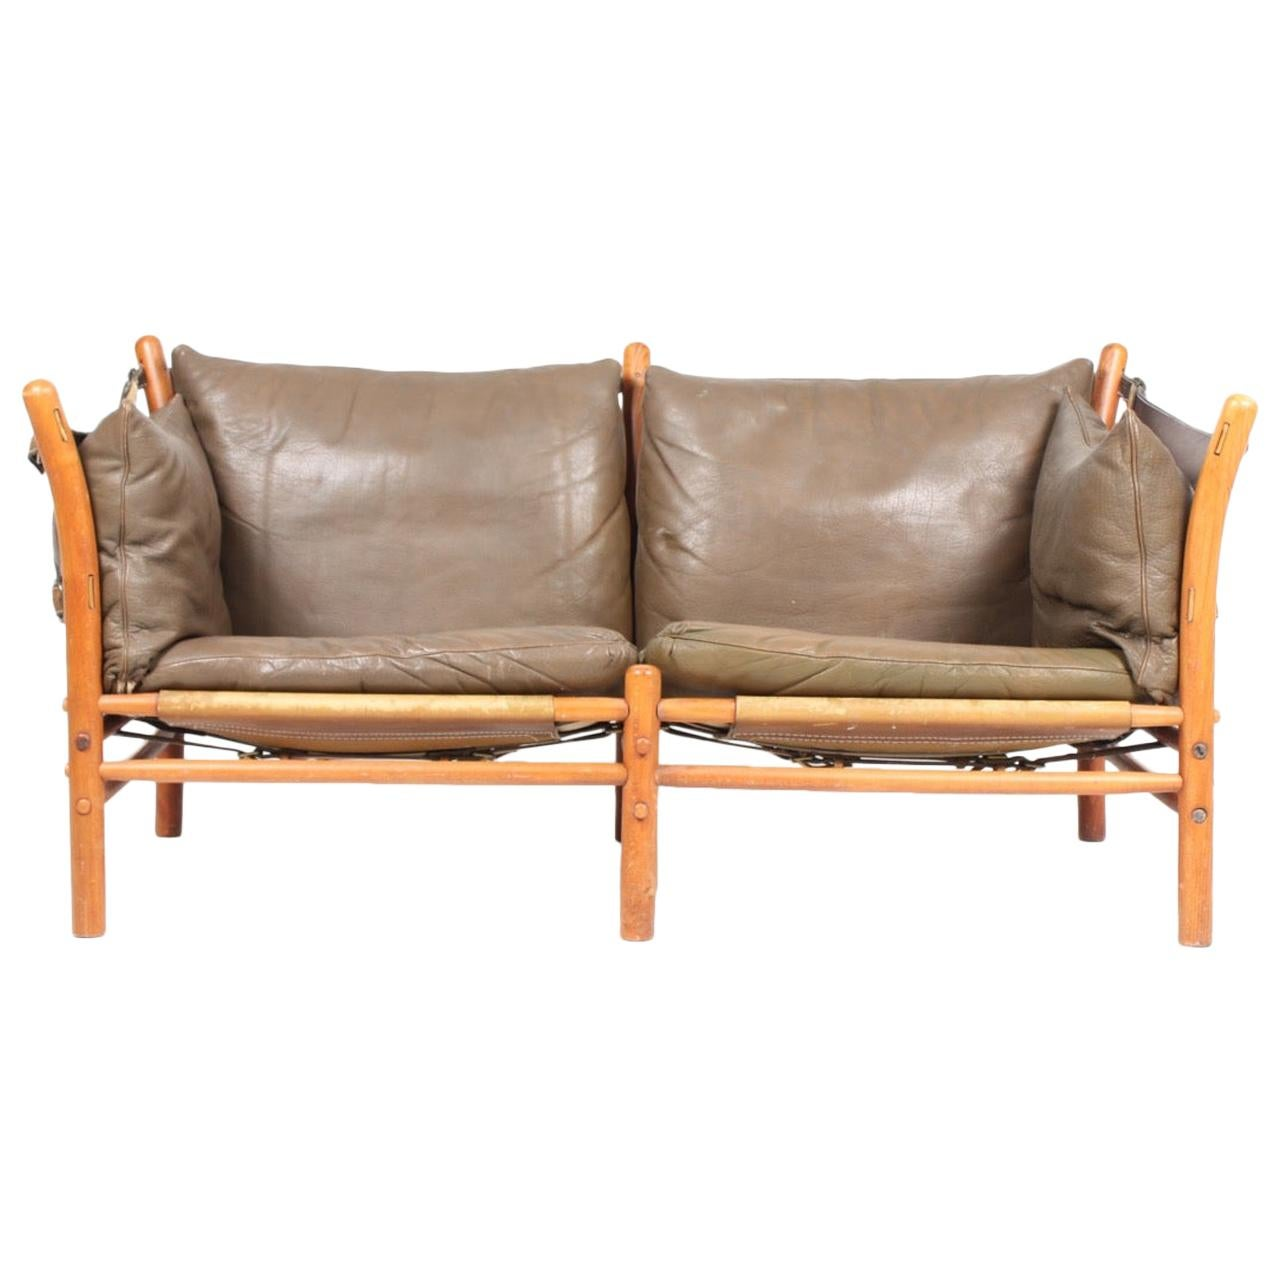 Wondrous Rare Arne Norell Ilona Sofa In Brown Leather Sweden 1960S Beatyapartments Chair Design Images Beatyapartmentscom